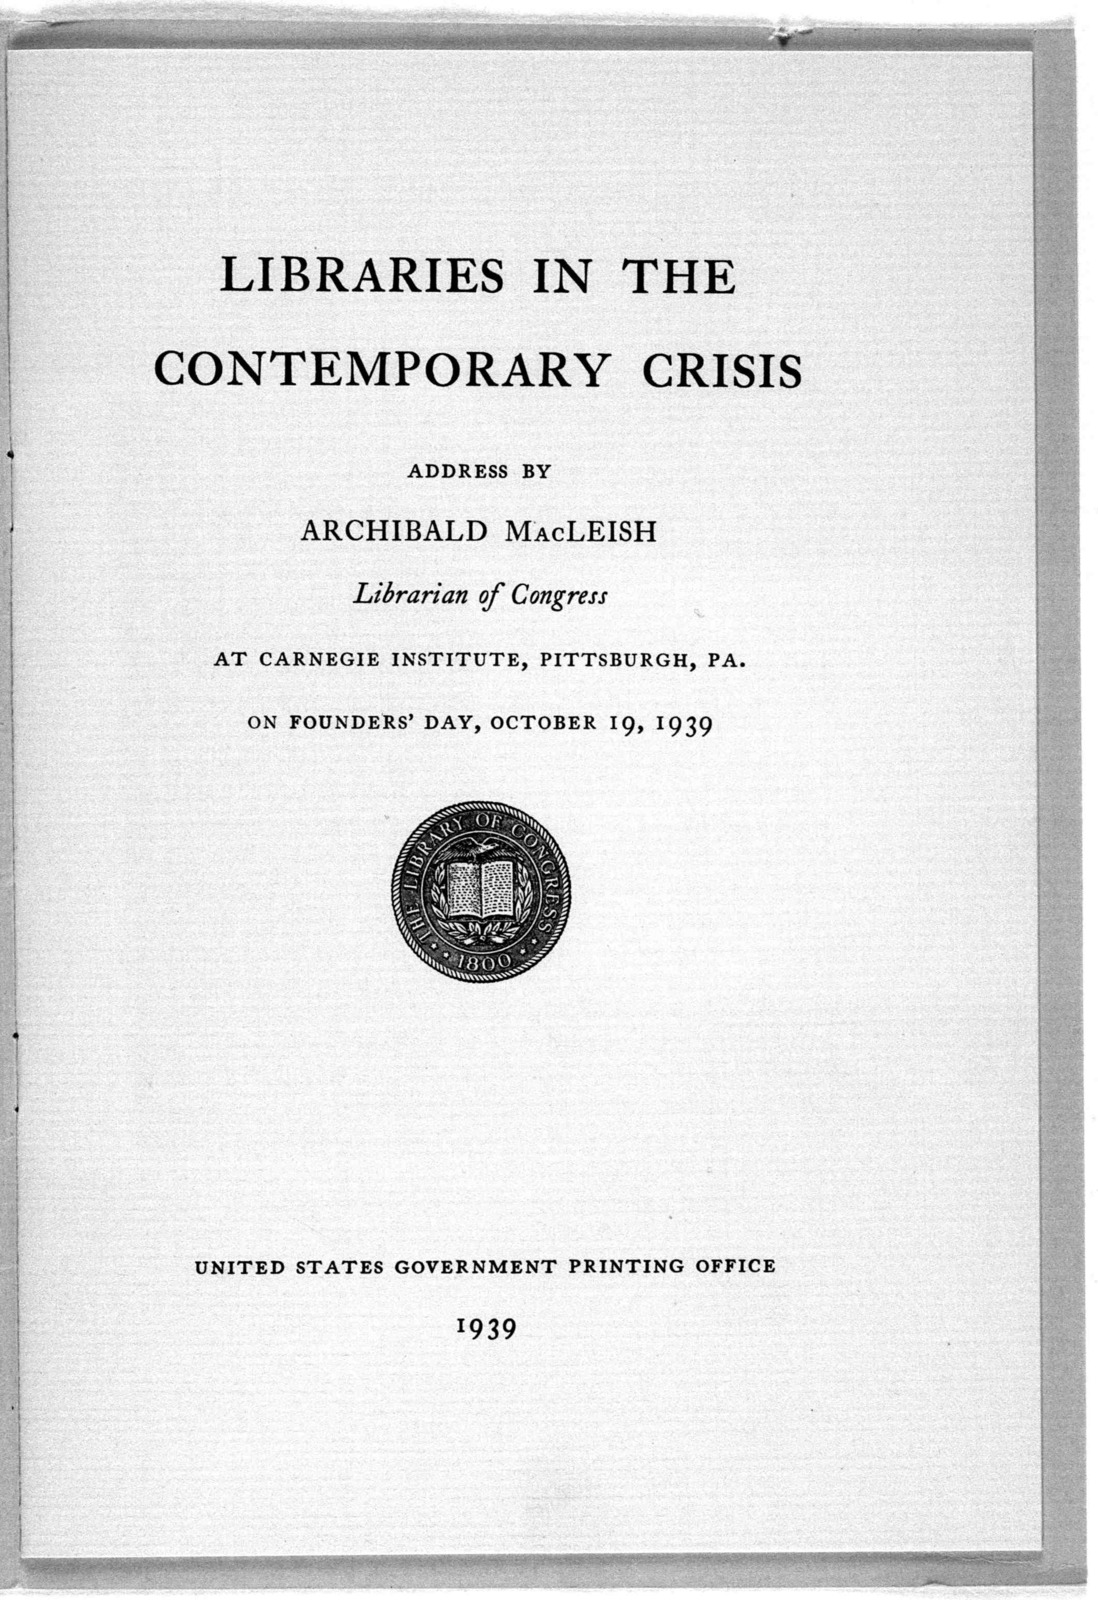 """""""Libraries in the Contemporary Crisis,"""" by Archibald MacLeish, October 19, 1939"""